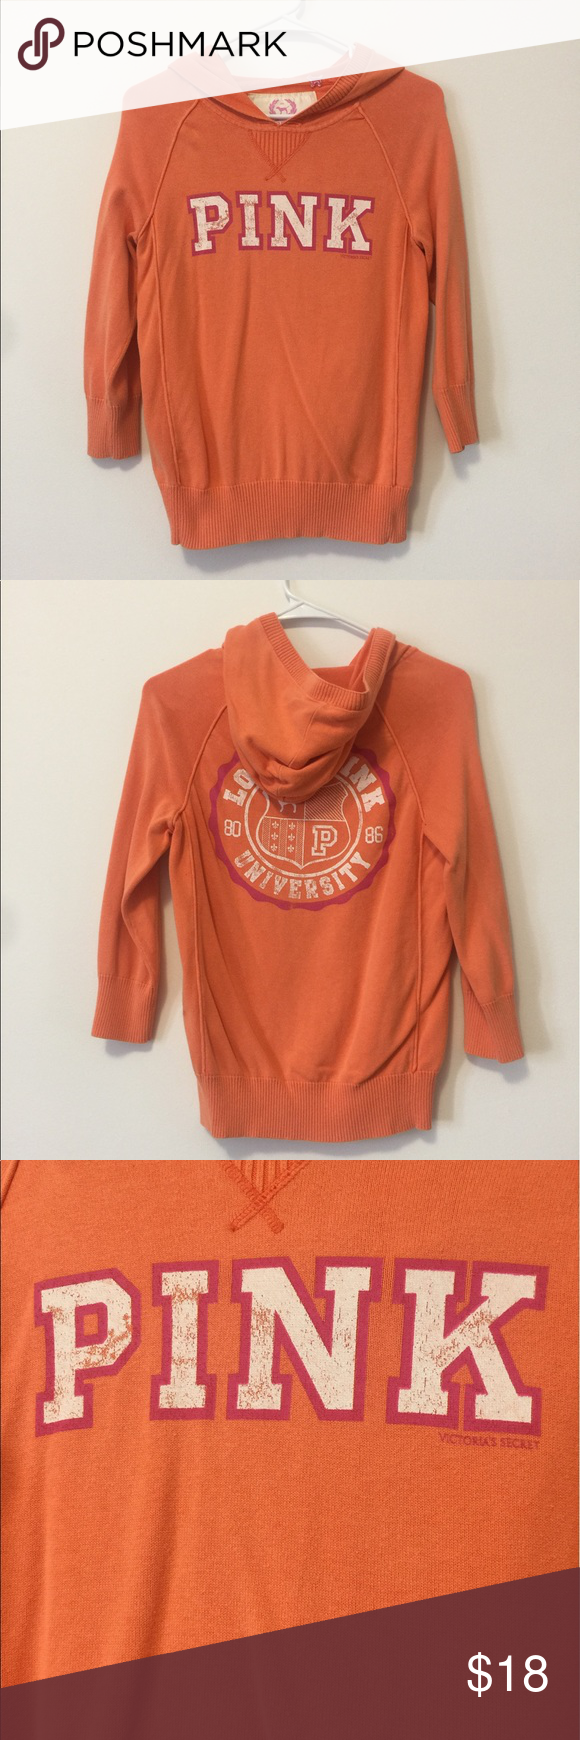 Victoria's Secret Pink 3/4 logo sweater | Orange color, Logos and ...